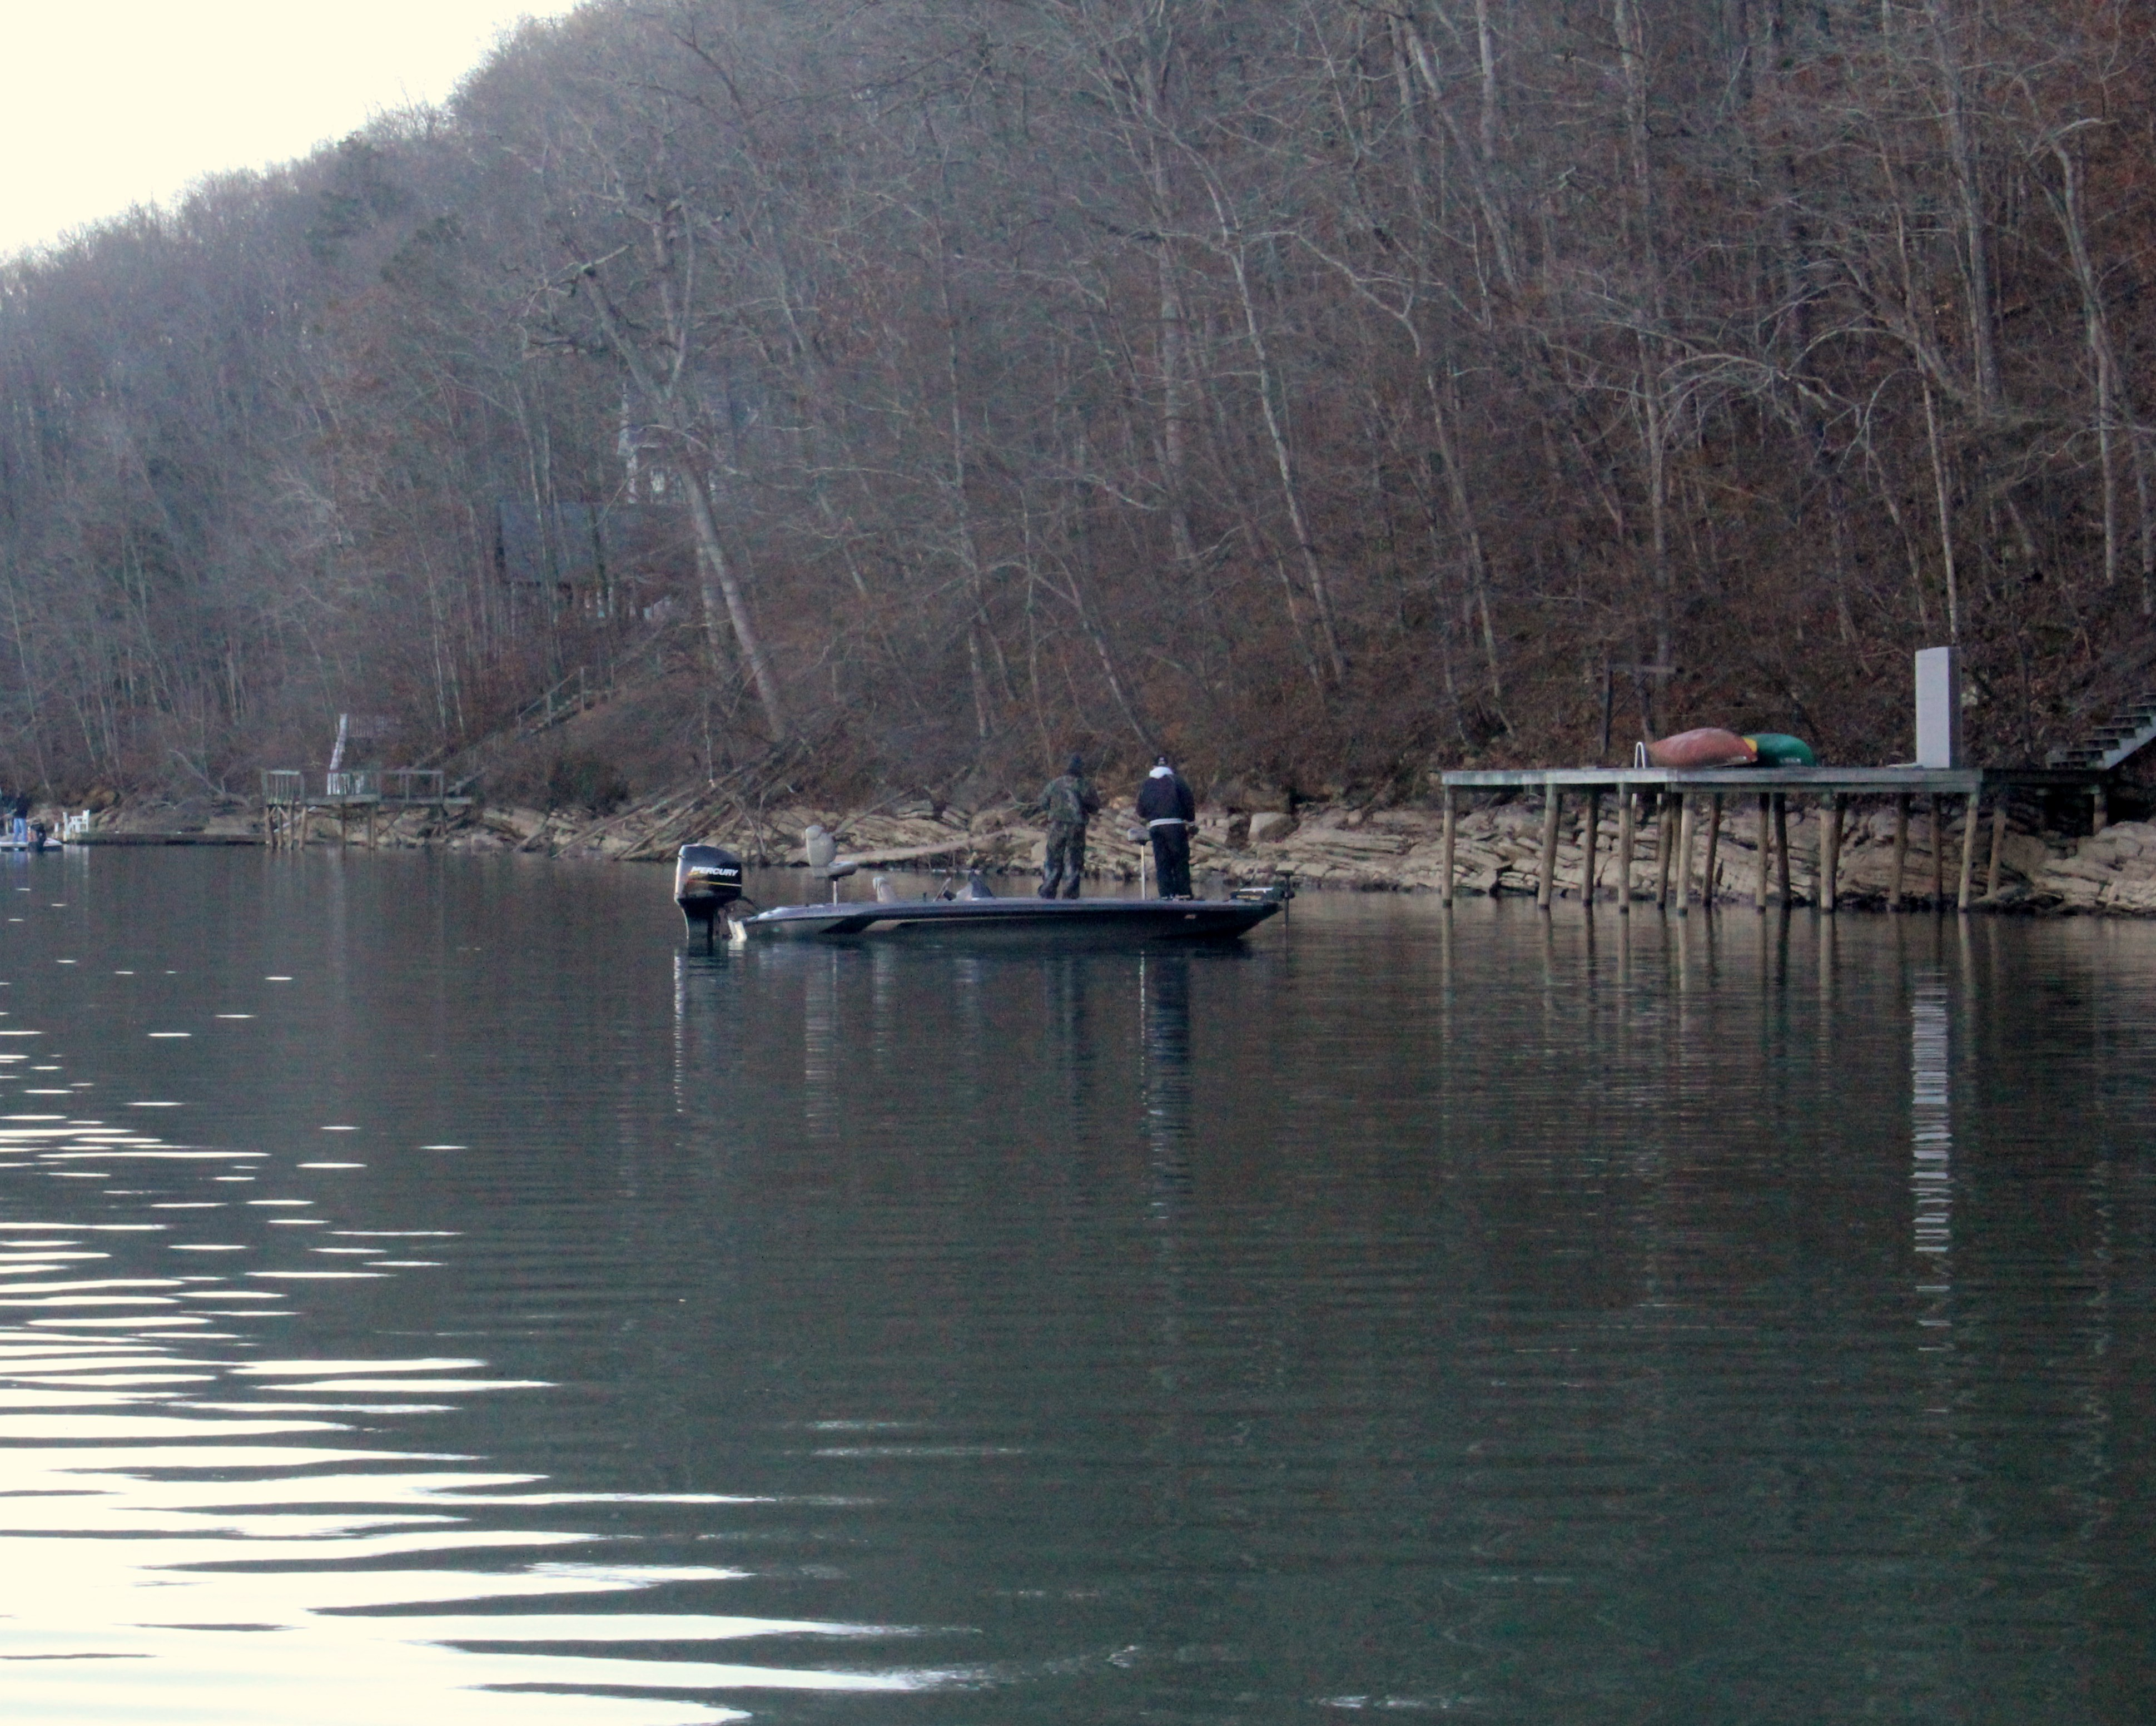 When fishing for crappie in the fall, check out Weiss Lake for some great fishing opportunities.